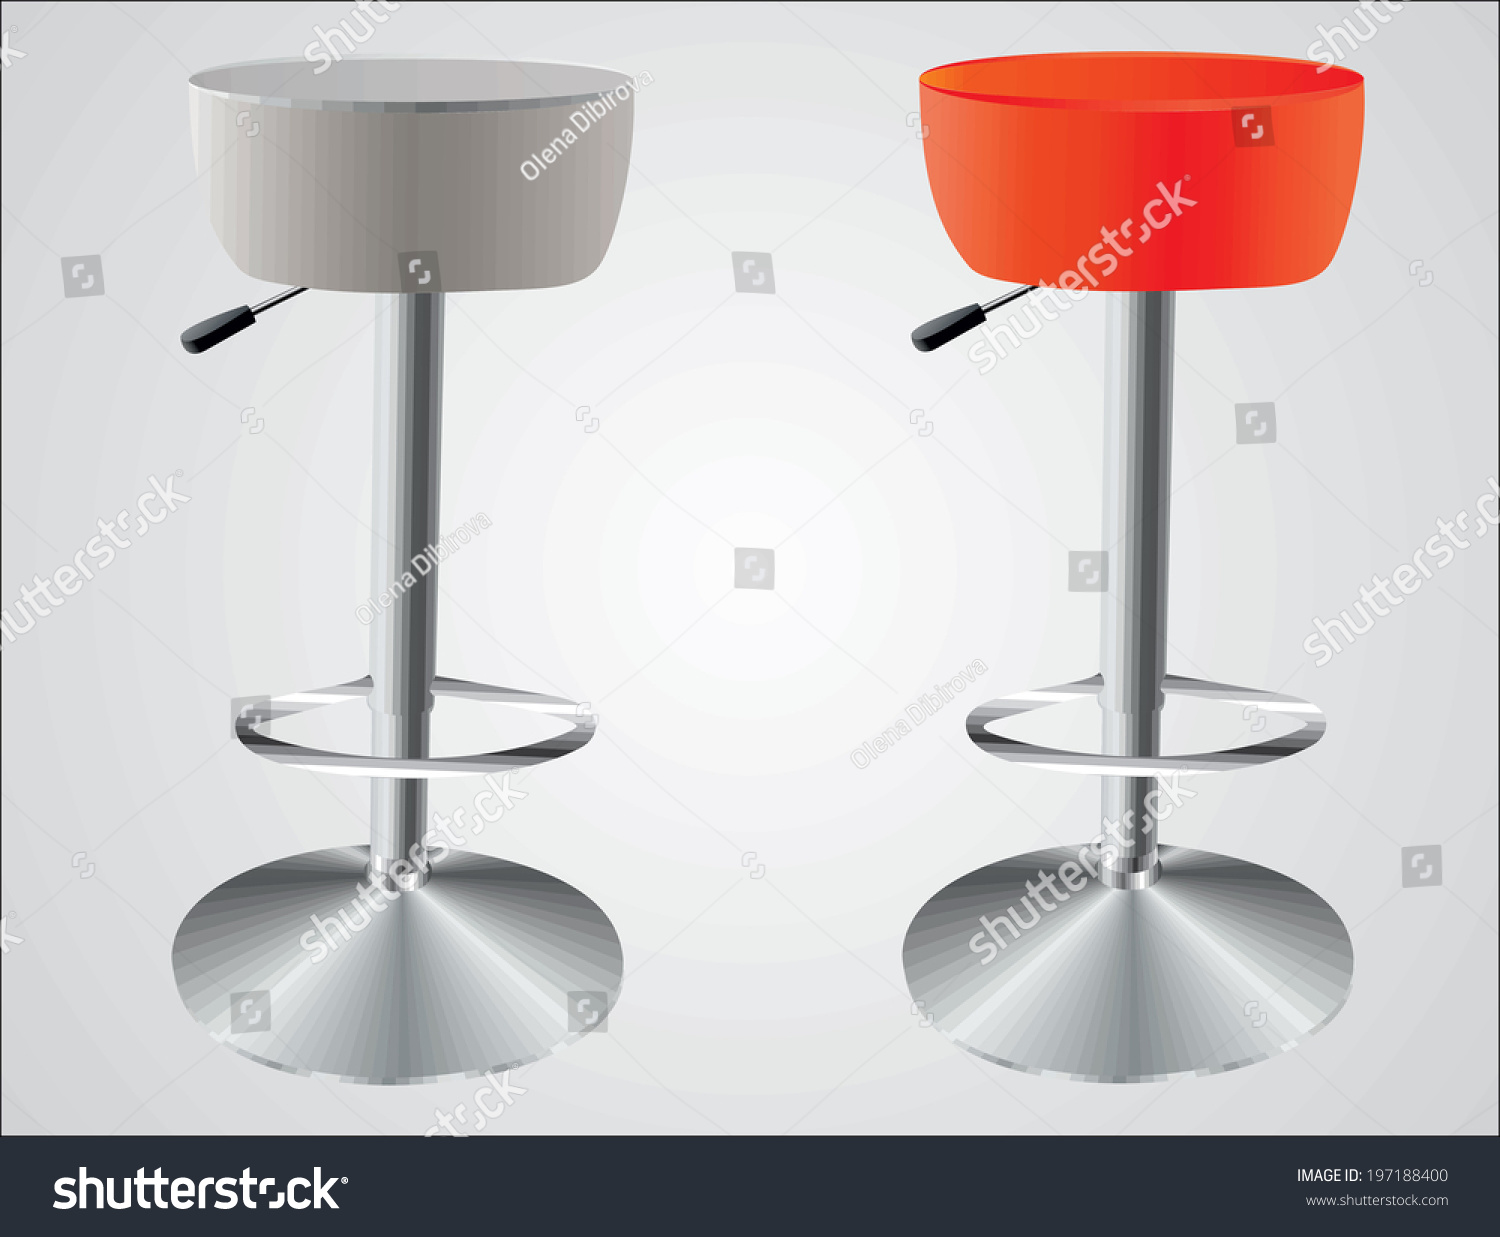 Bar Stools Stock Vector 197188400 Shutterstock : stock vector bar stools 197188400 from www.shutterstock.com size 1500 x 1237 jpeg 233kB